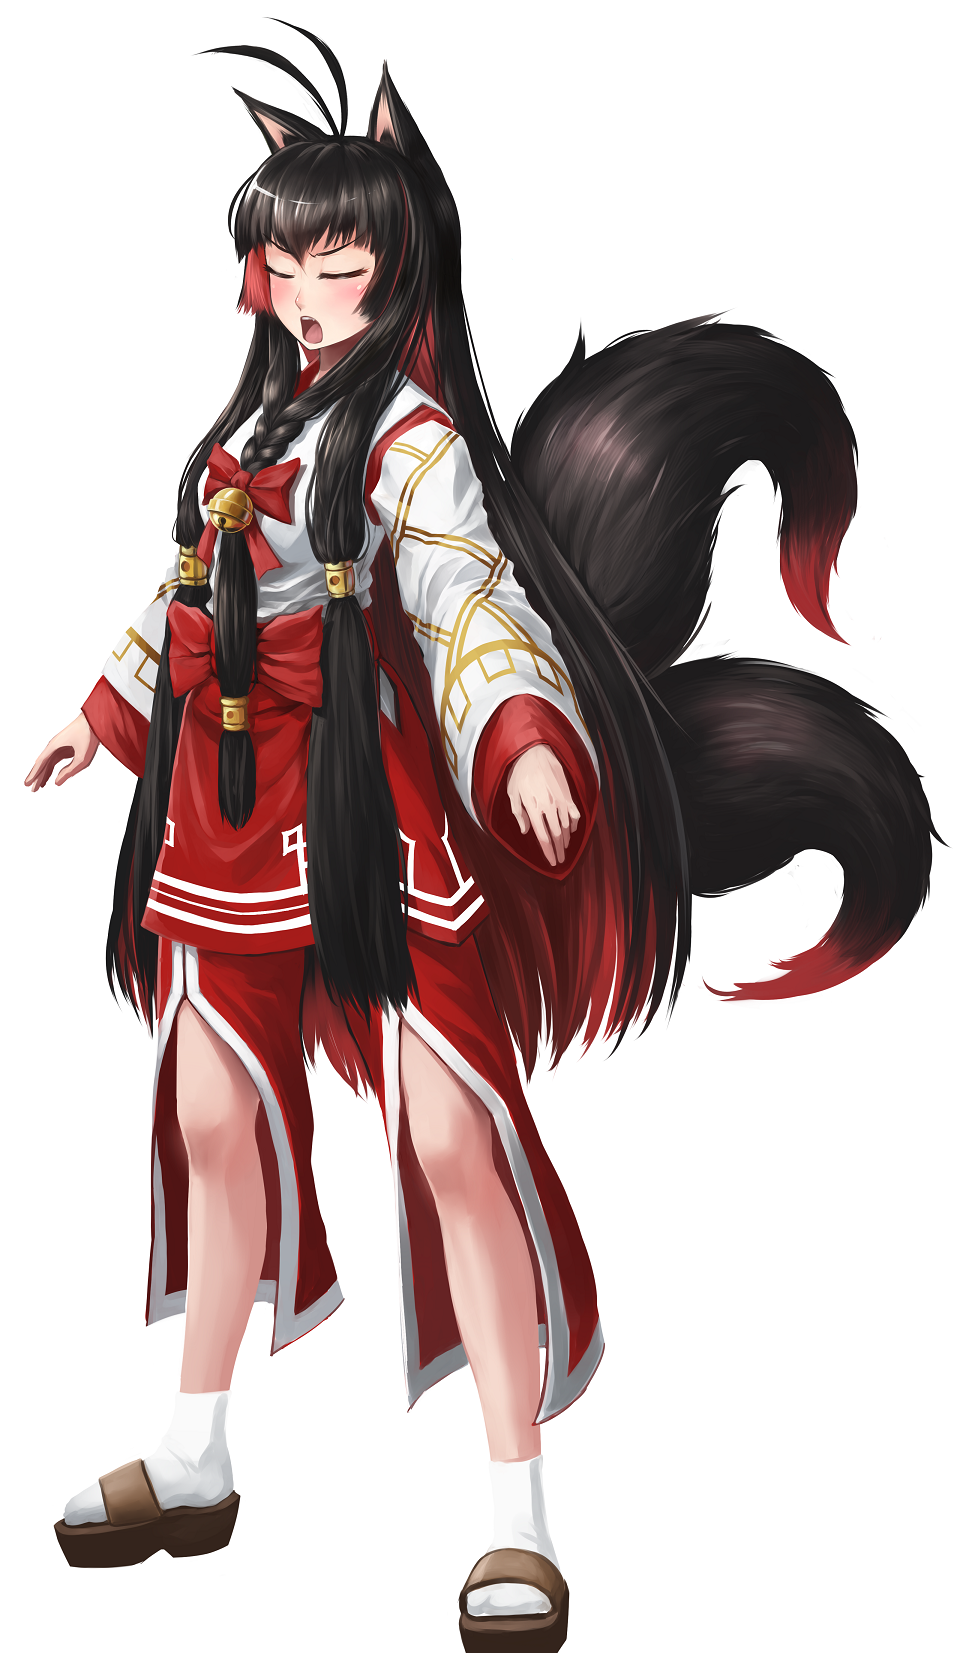 1girl animal_ears antenna_hair arms_at_sides bell blush bow braid brown_hair clog_sandals closed_eyes commentary_request fox_ears fox_girl fox_tail full_body hair_bell hair_bow hair_ornament highres japanese_clothes jingle_bell kimono legs_apart long_hair long_sleeves maritan_(pixelmaritan) multicolored_hair multiple_tails open_mouth original red_bow redhead sandals simple_background socks solo tail two-tone_hair two_tails very_long_hair white_background white_legwear wide_sleeves